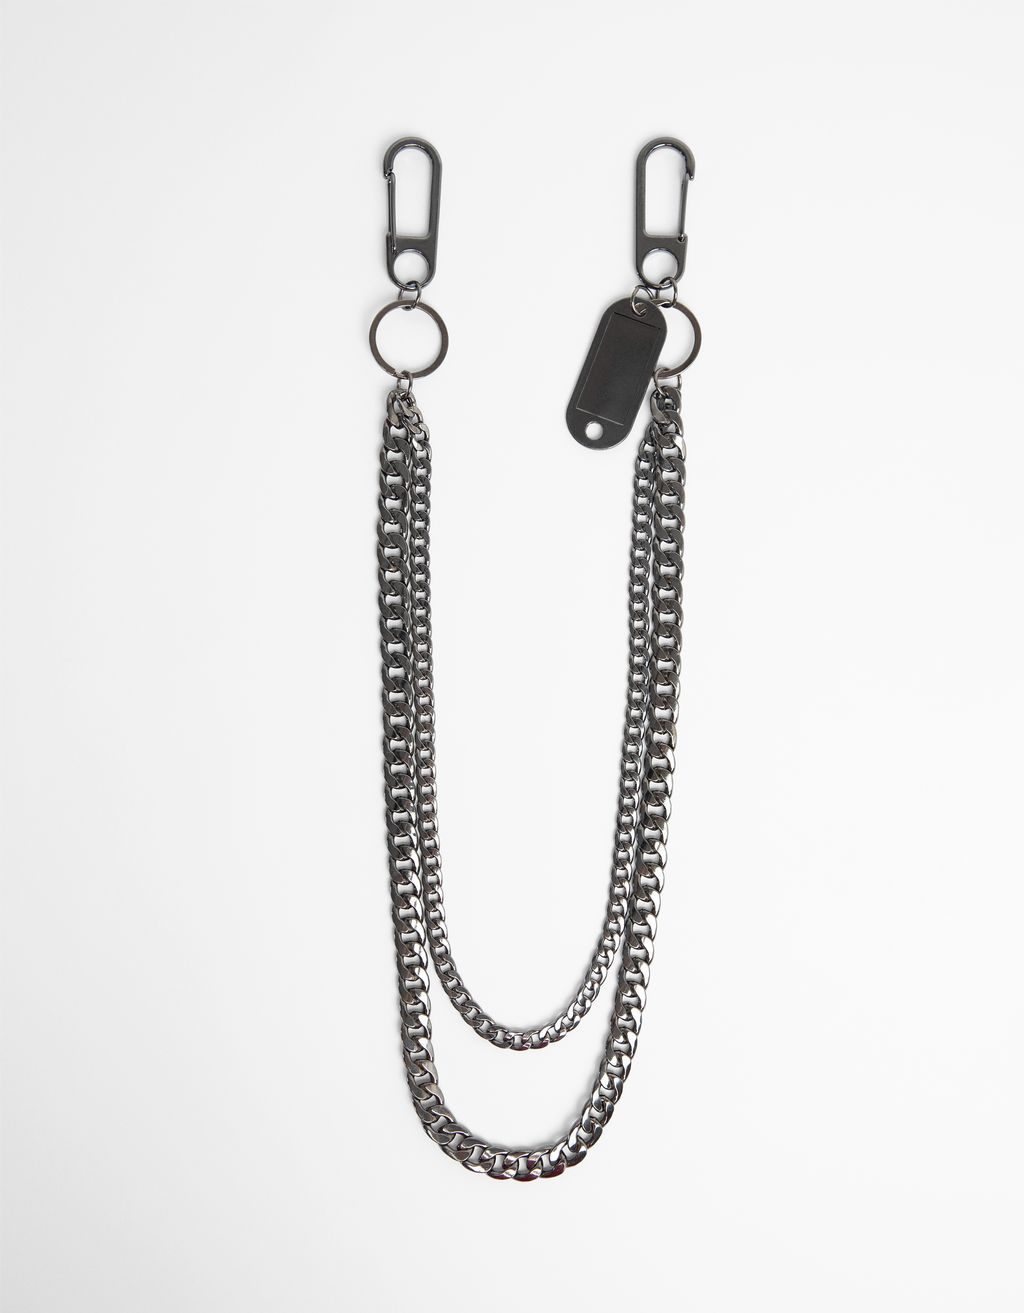 Double-chain key ring